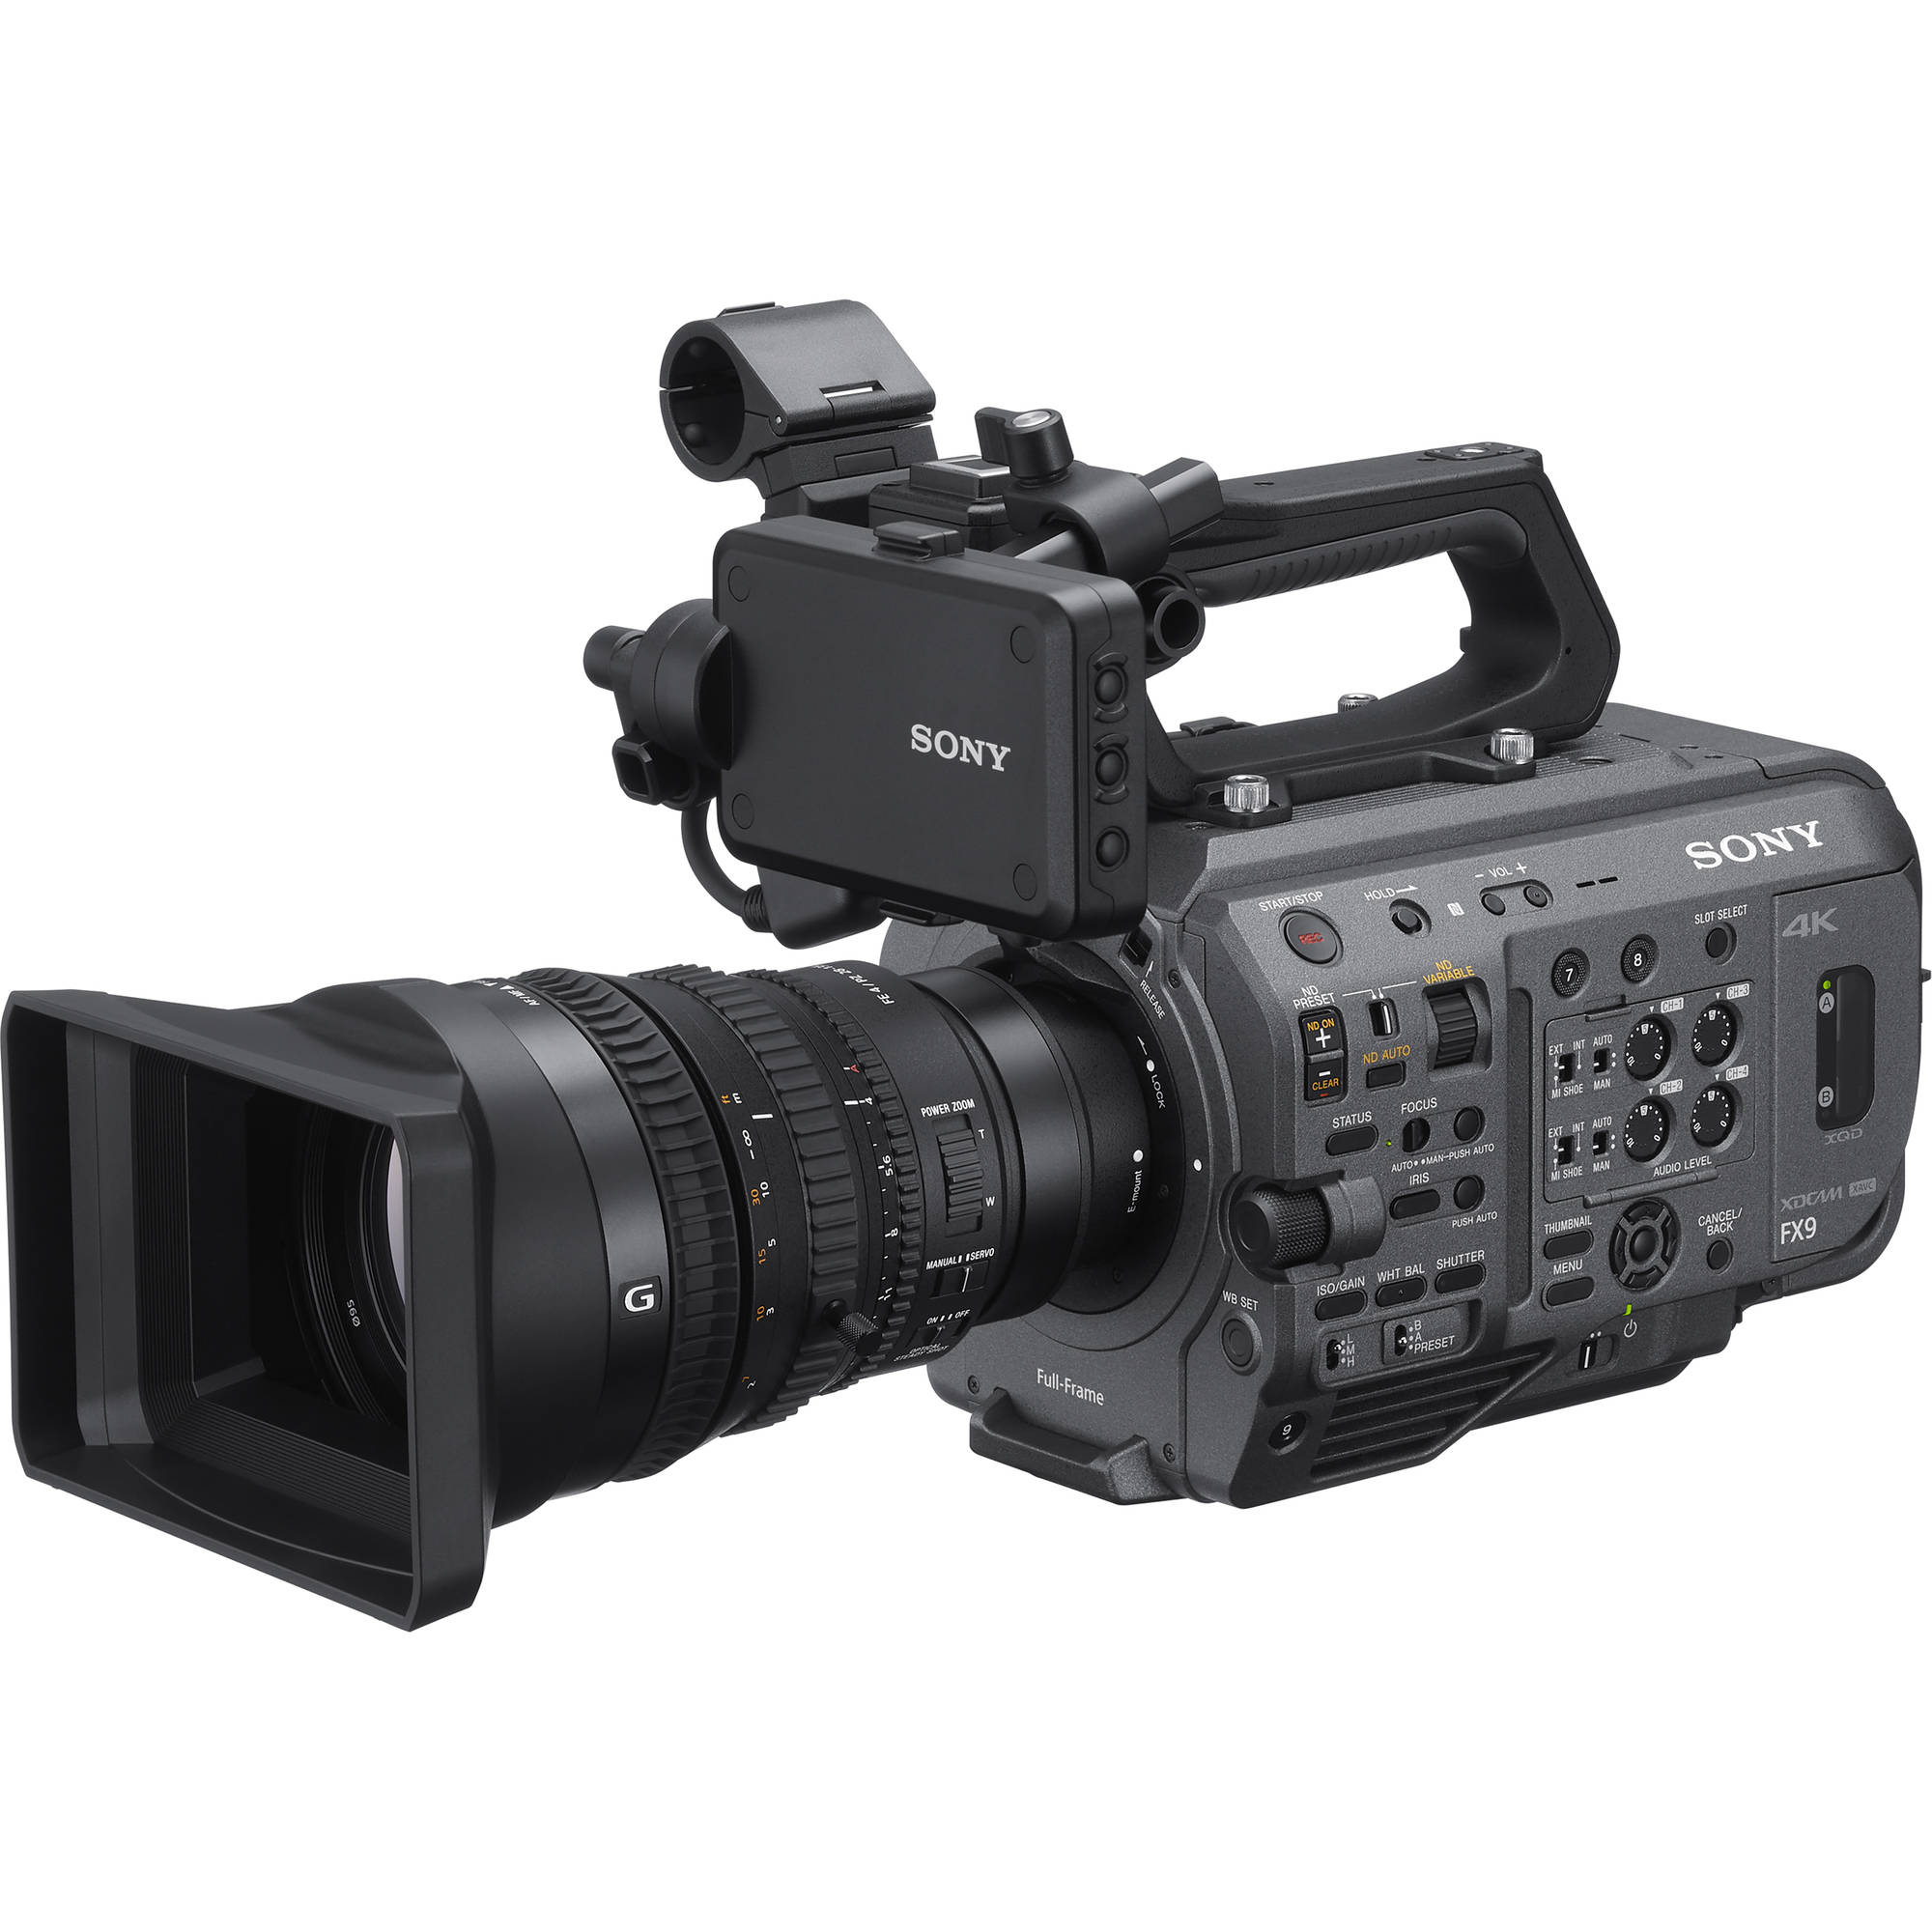 Sony PXW-FX9 XDCAM Full Frame 6K Sensor & 4K Recording with 28-135mm f/4 G OSS Lens